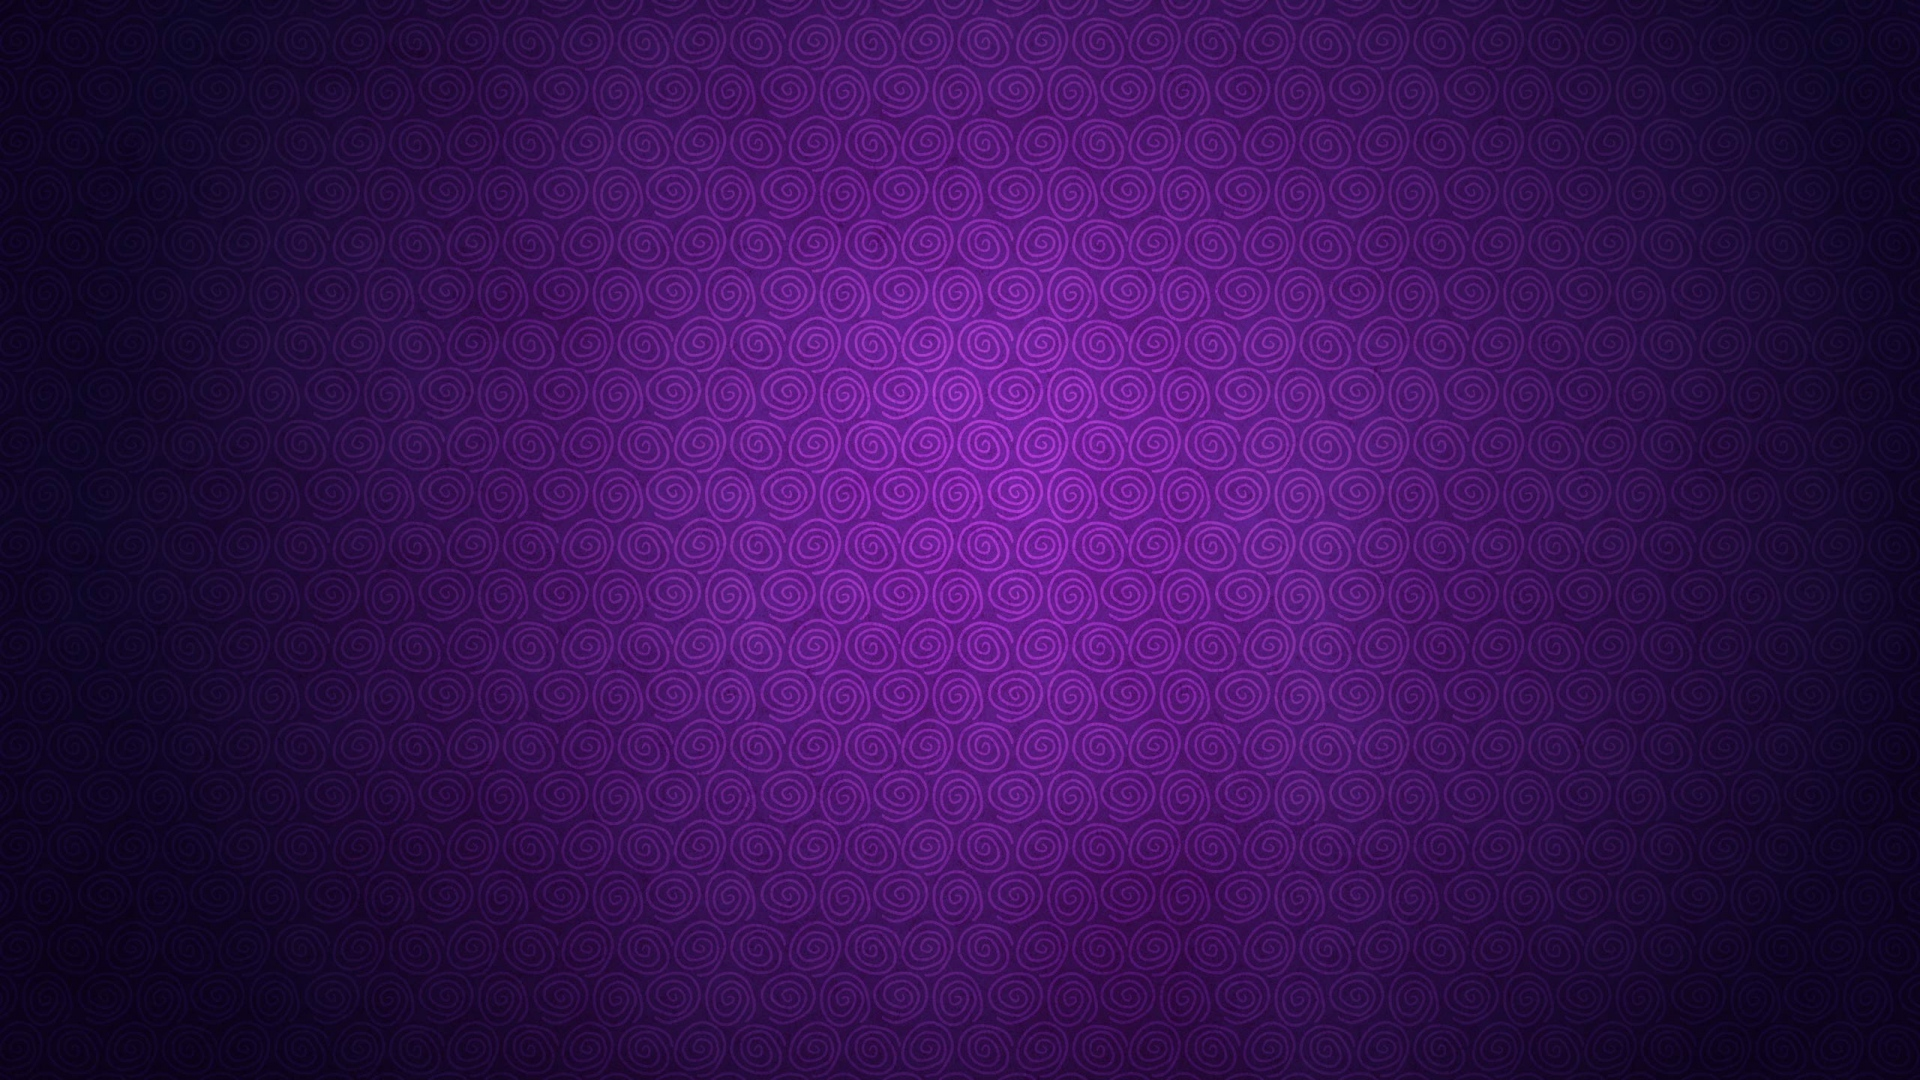 1920x1080 spinning, twisting, dark, purple Full HD 1080p HD Background